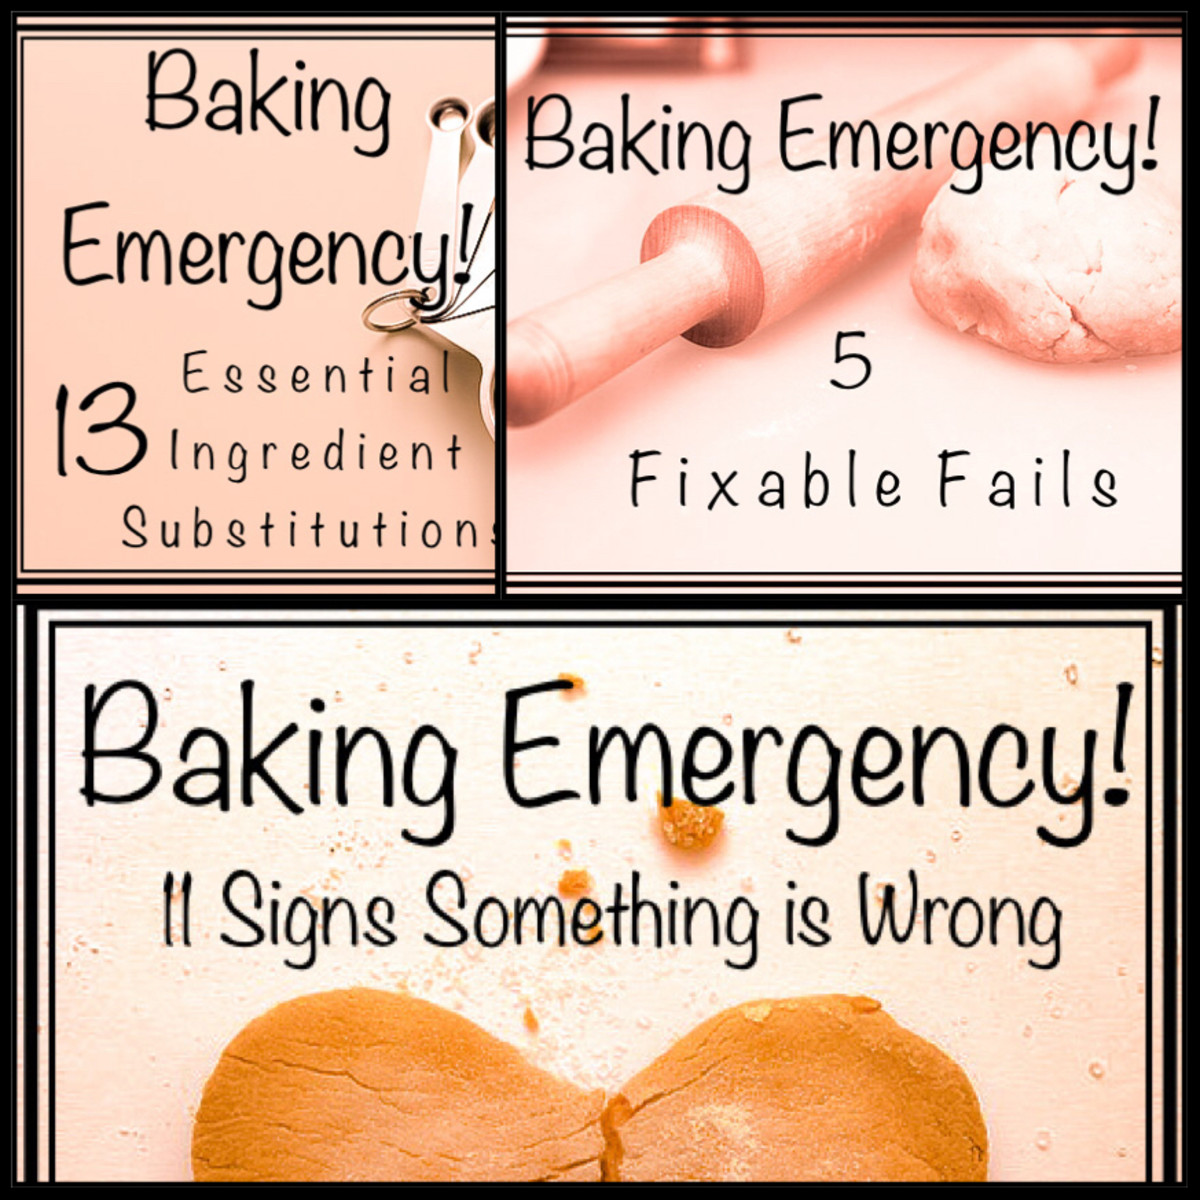 baking-emergency-11-signs-something-is-wrong-what-to-do